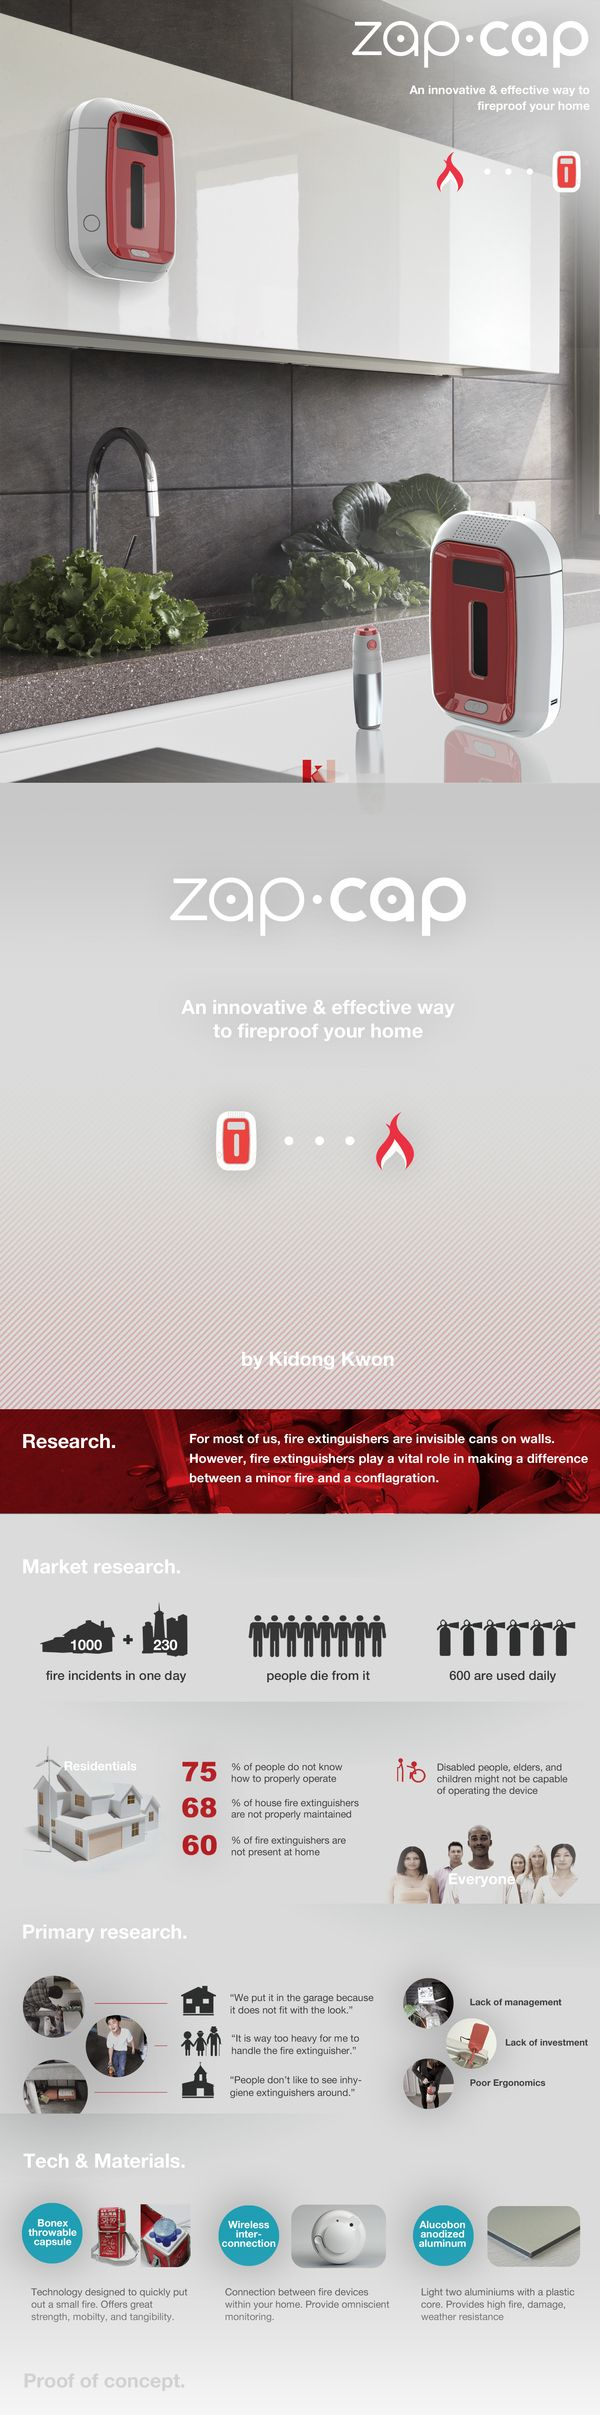 Zap•cap on Industrial Design Served